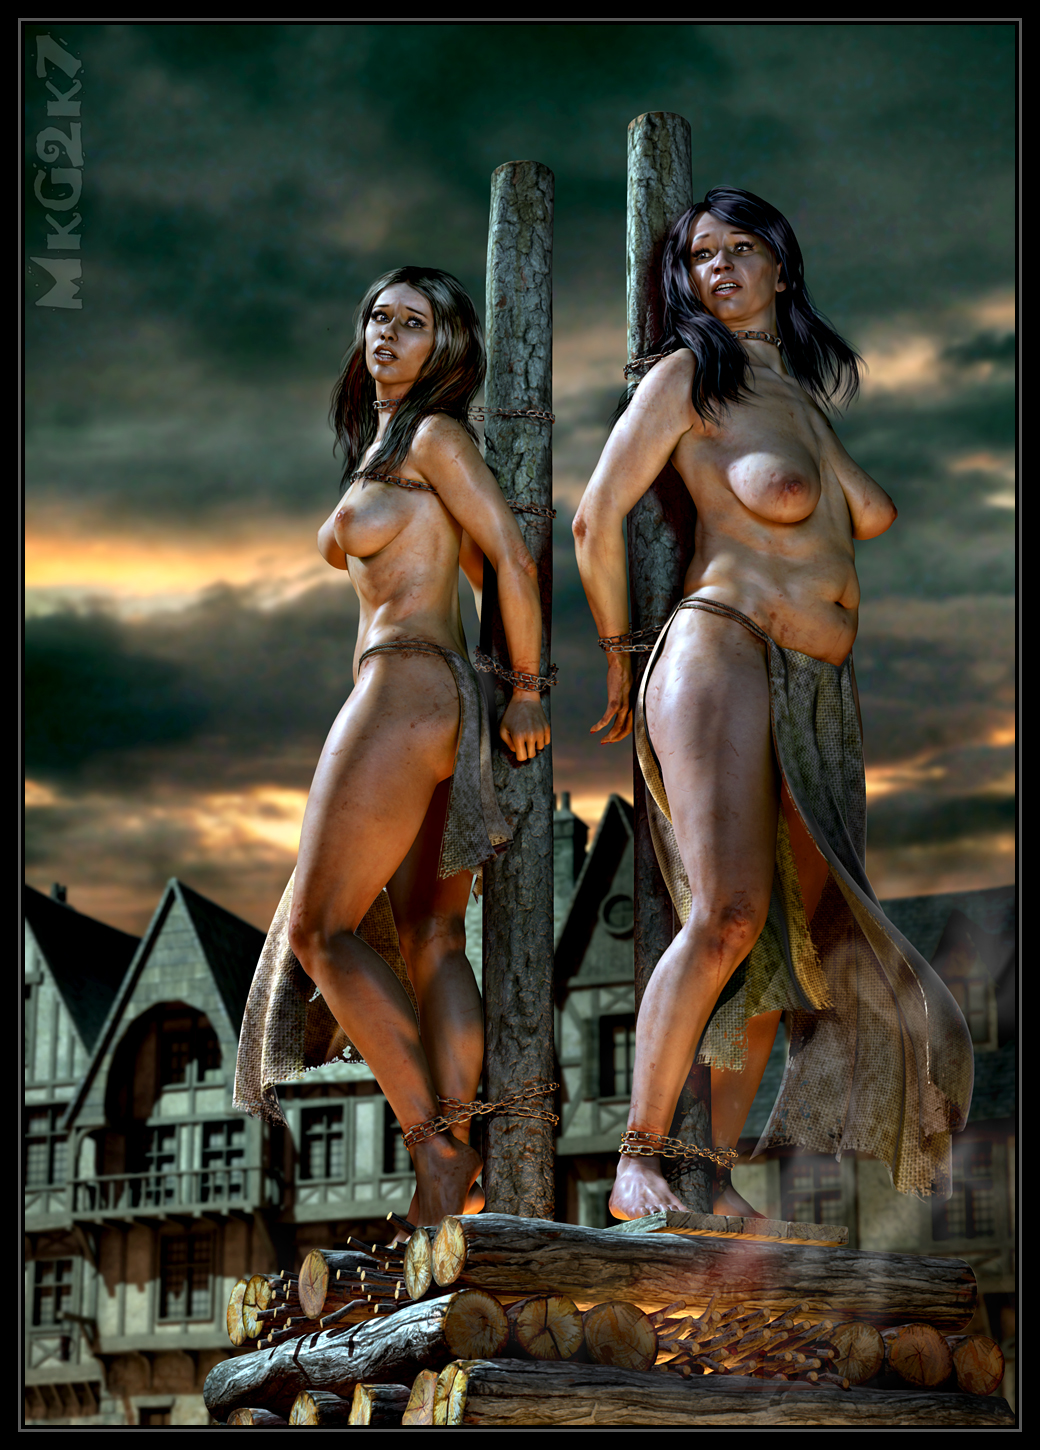 Nude witches pic erotic videos